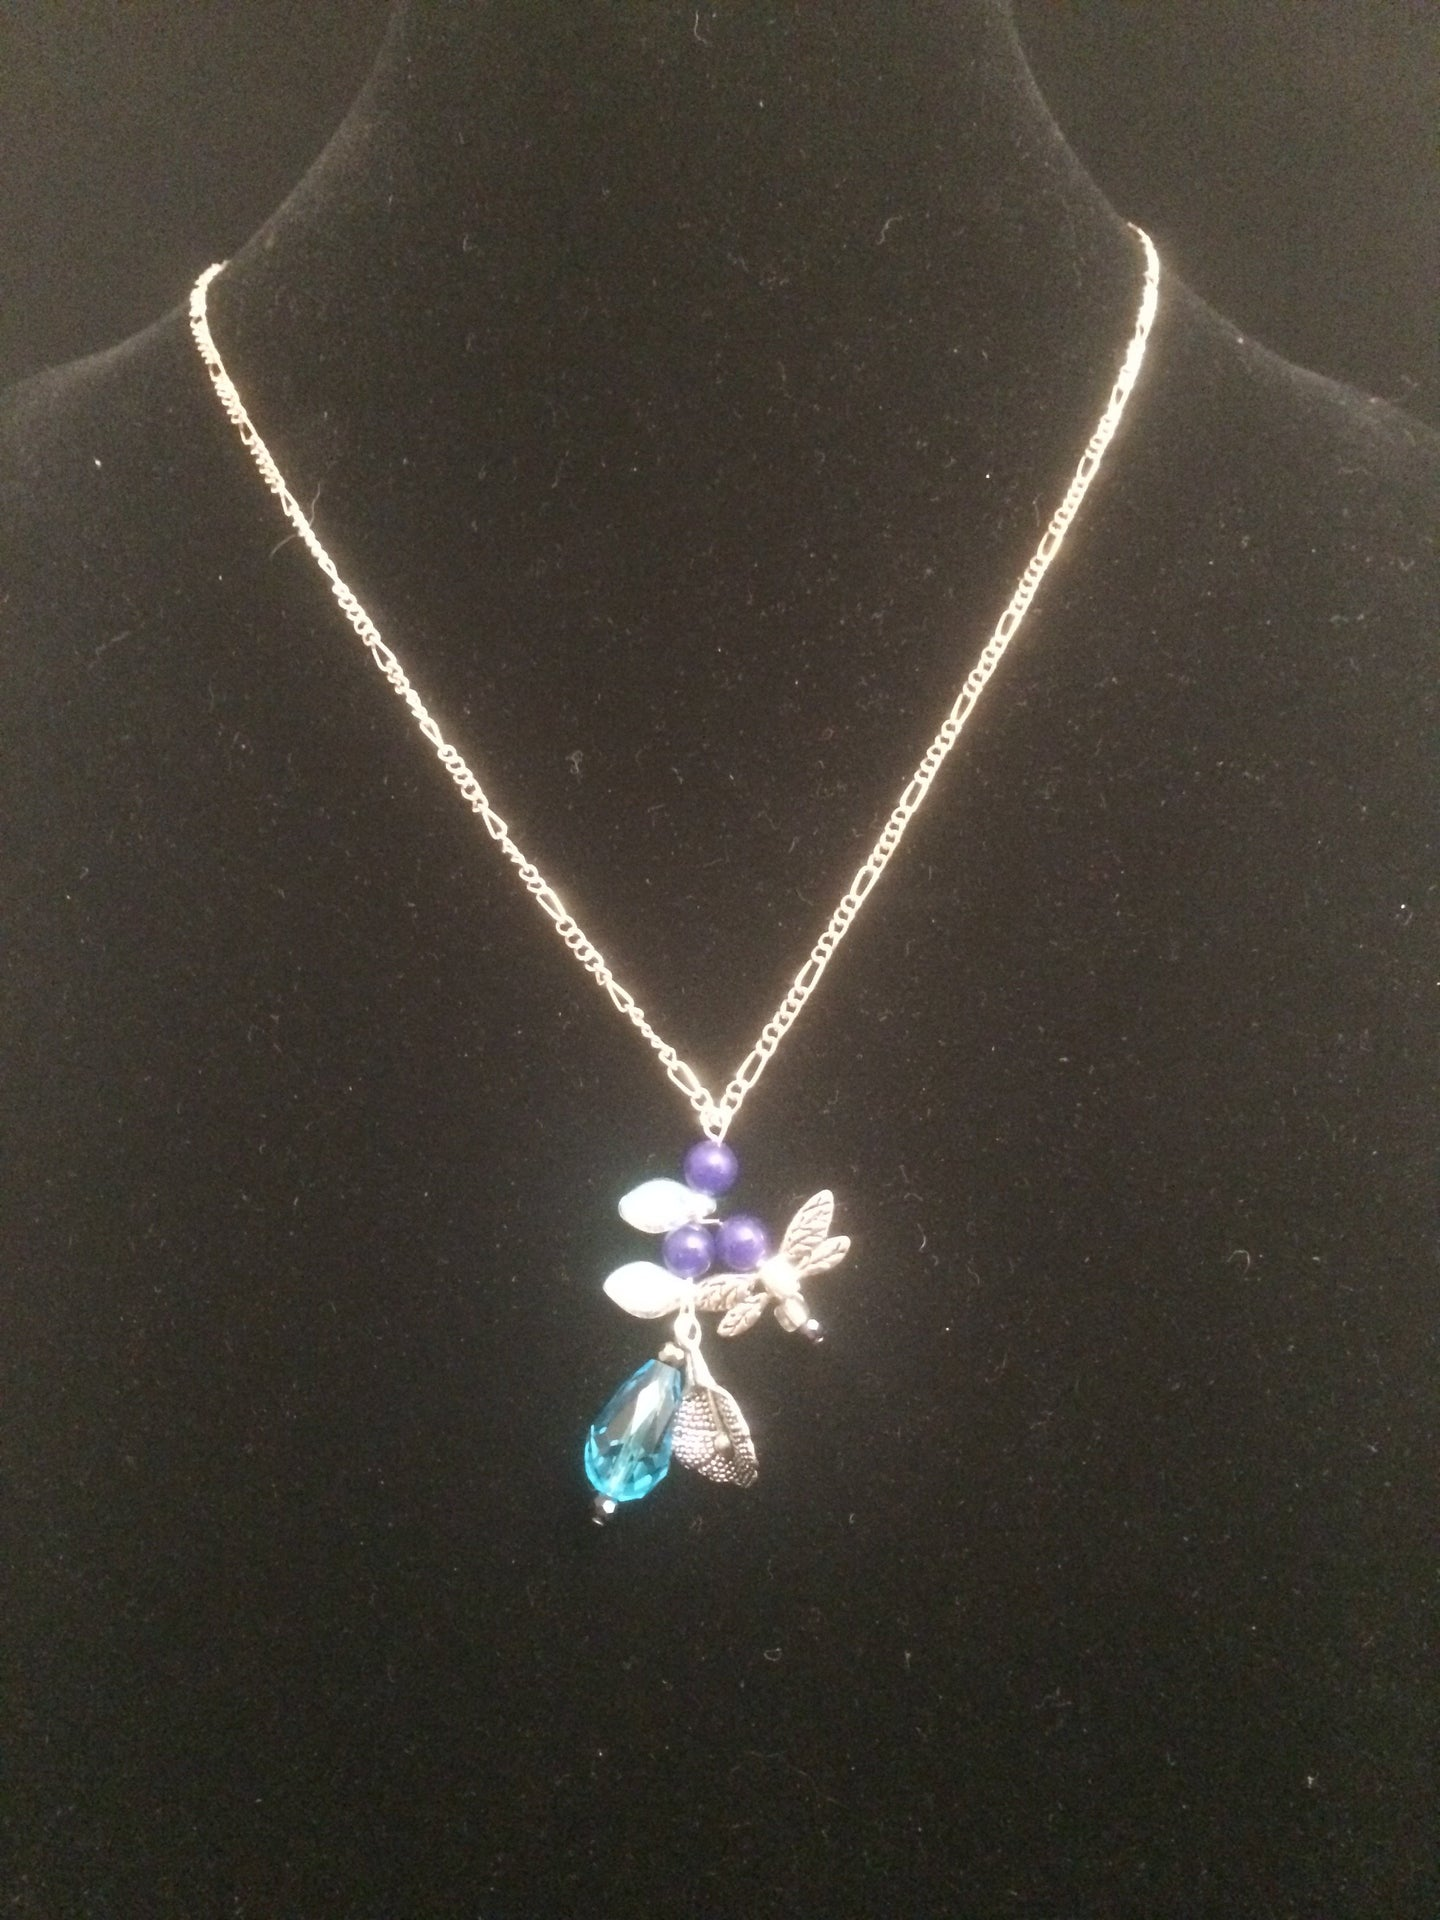 Necklace set with a lily theme accented with blue glass beads and blue faceted beads and metal charms. Forms a matching set when purchased with earrings 1EAR0136.